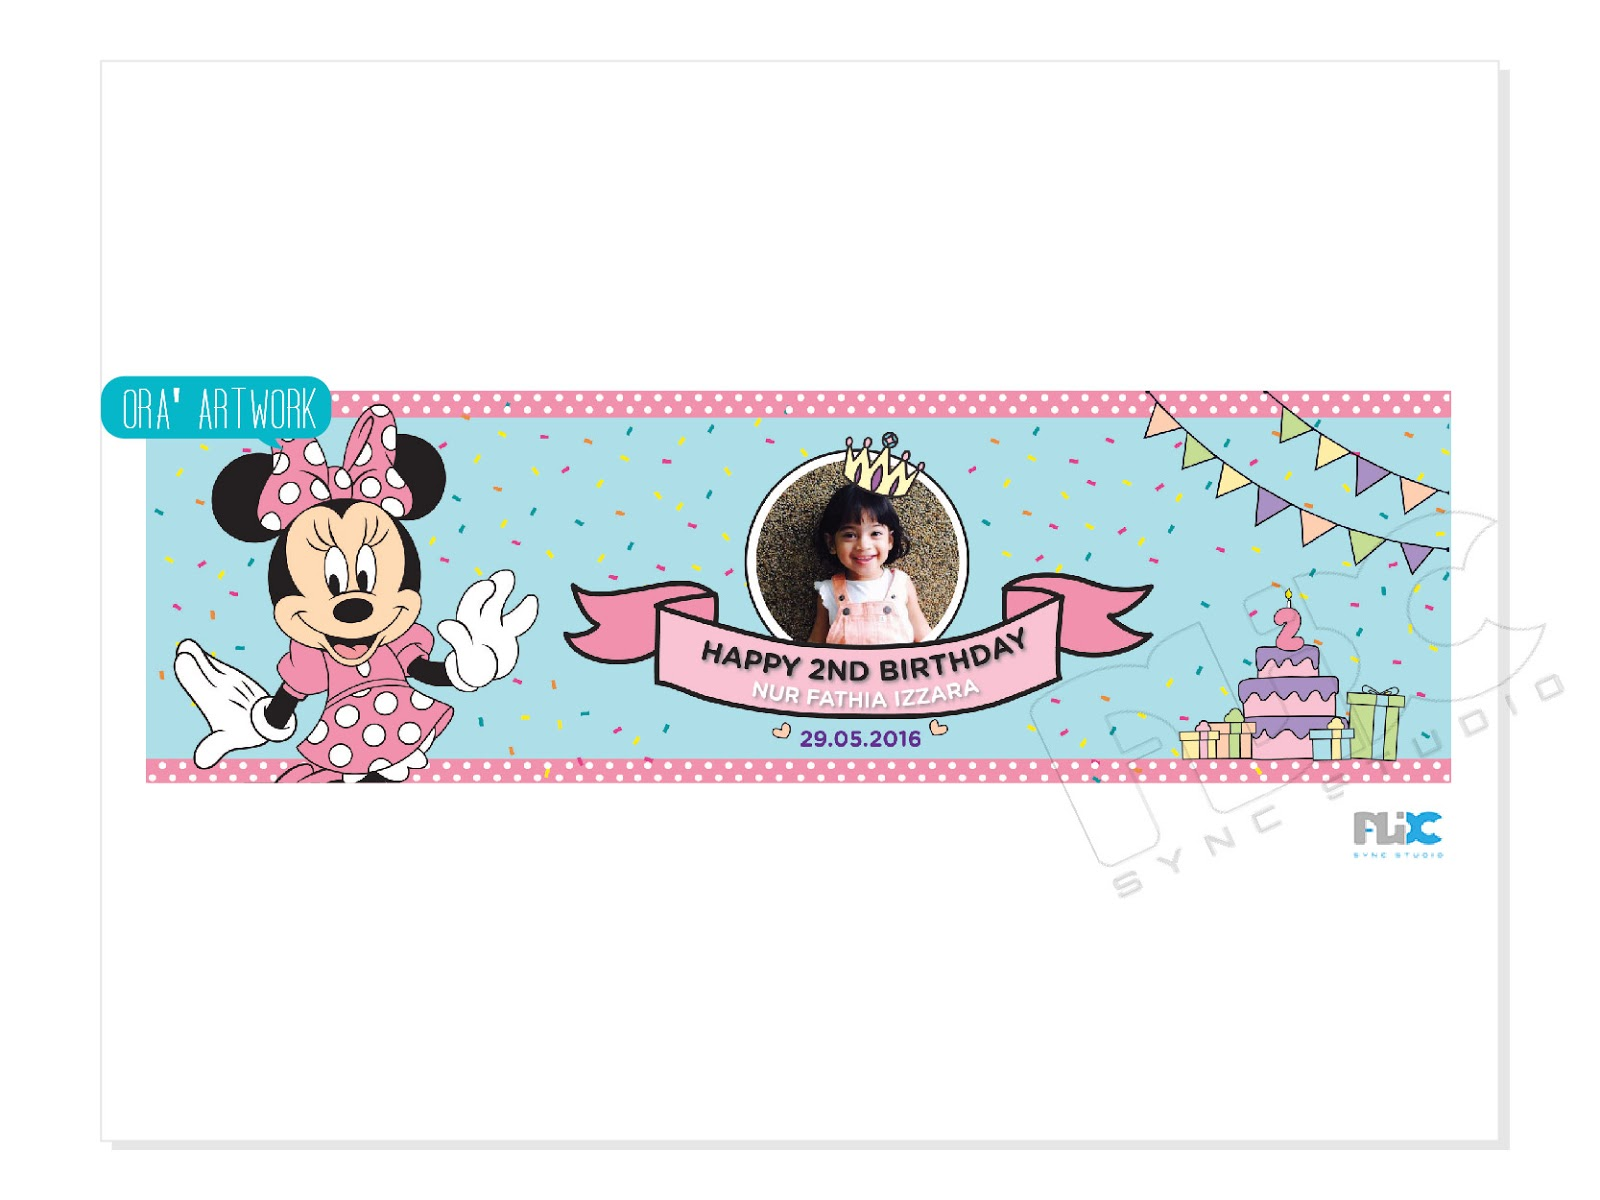 birthday party banner design with a theme of minnie mouse ora adzlin